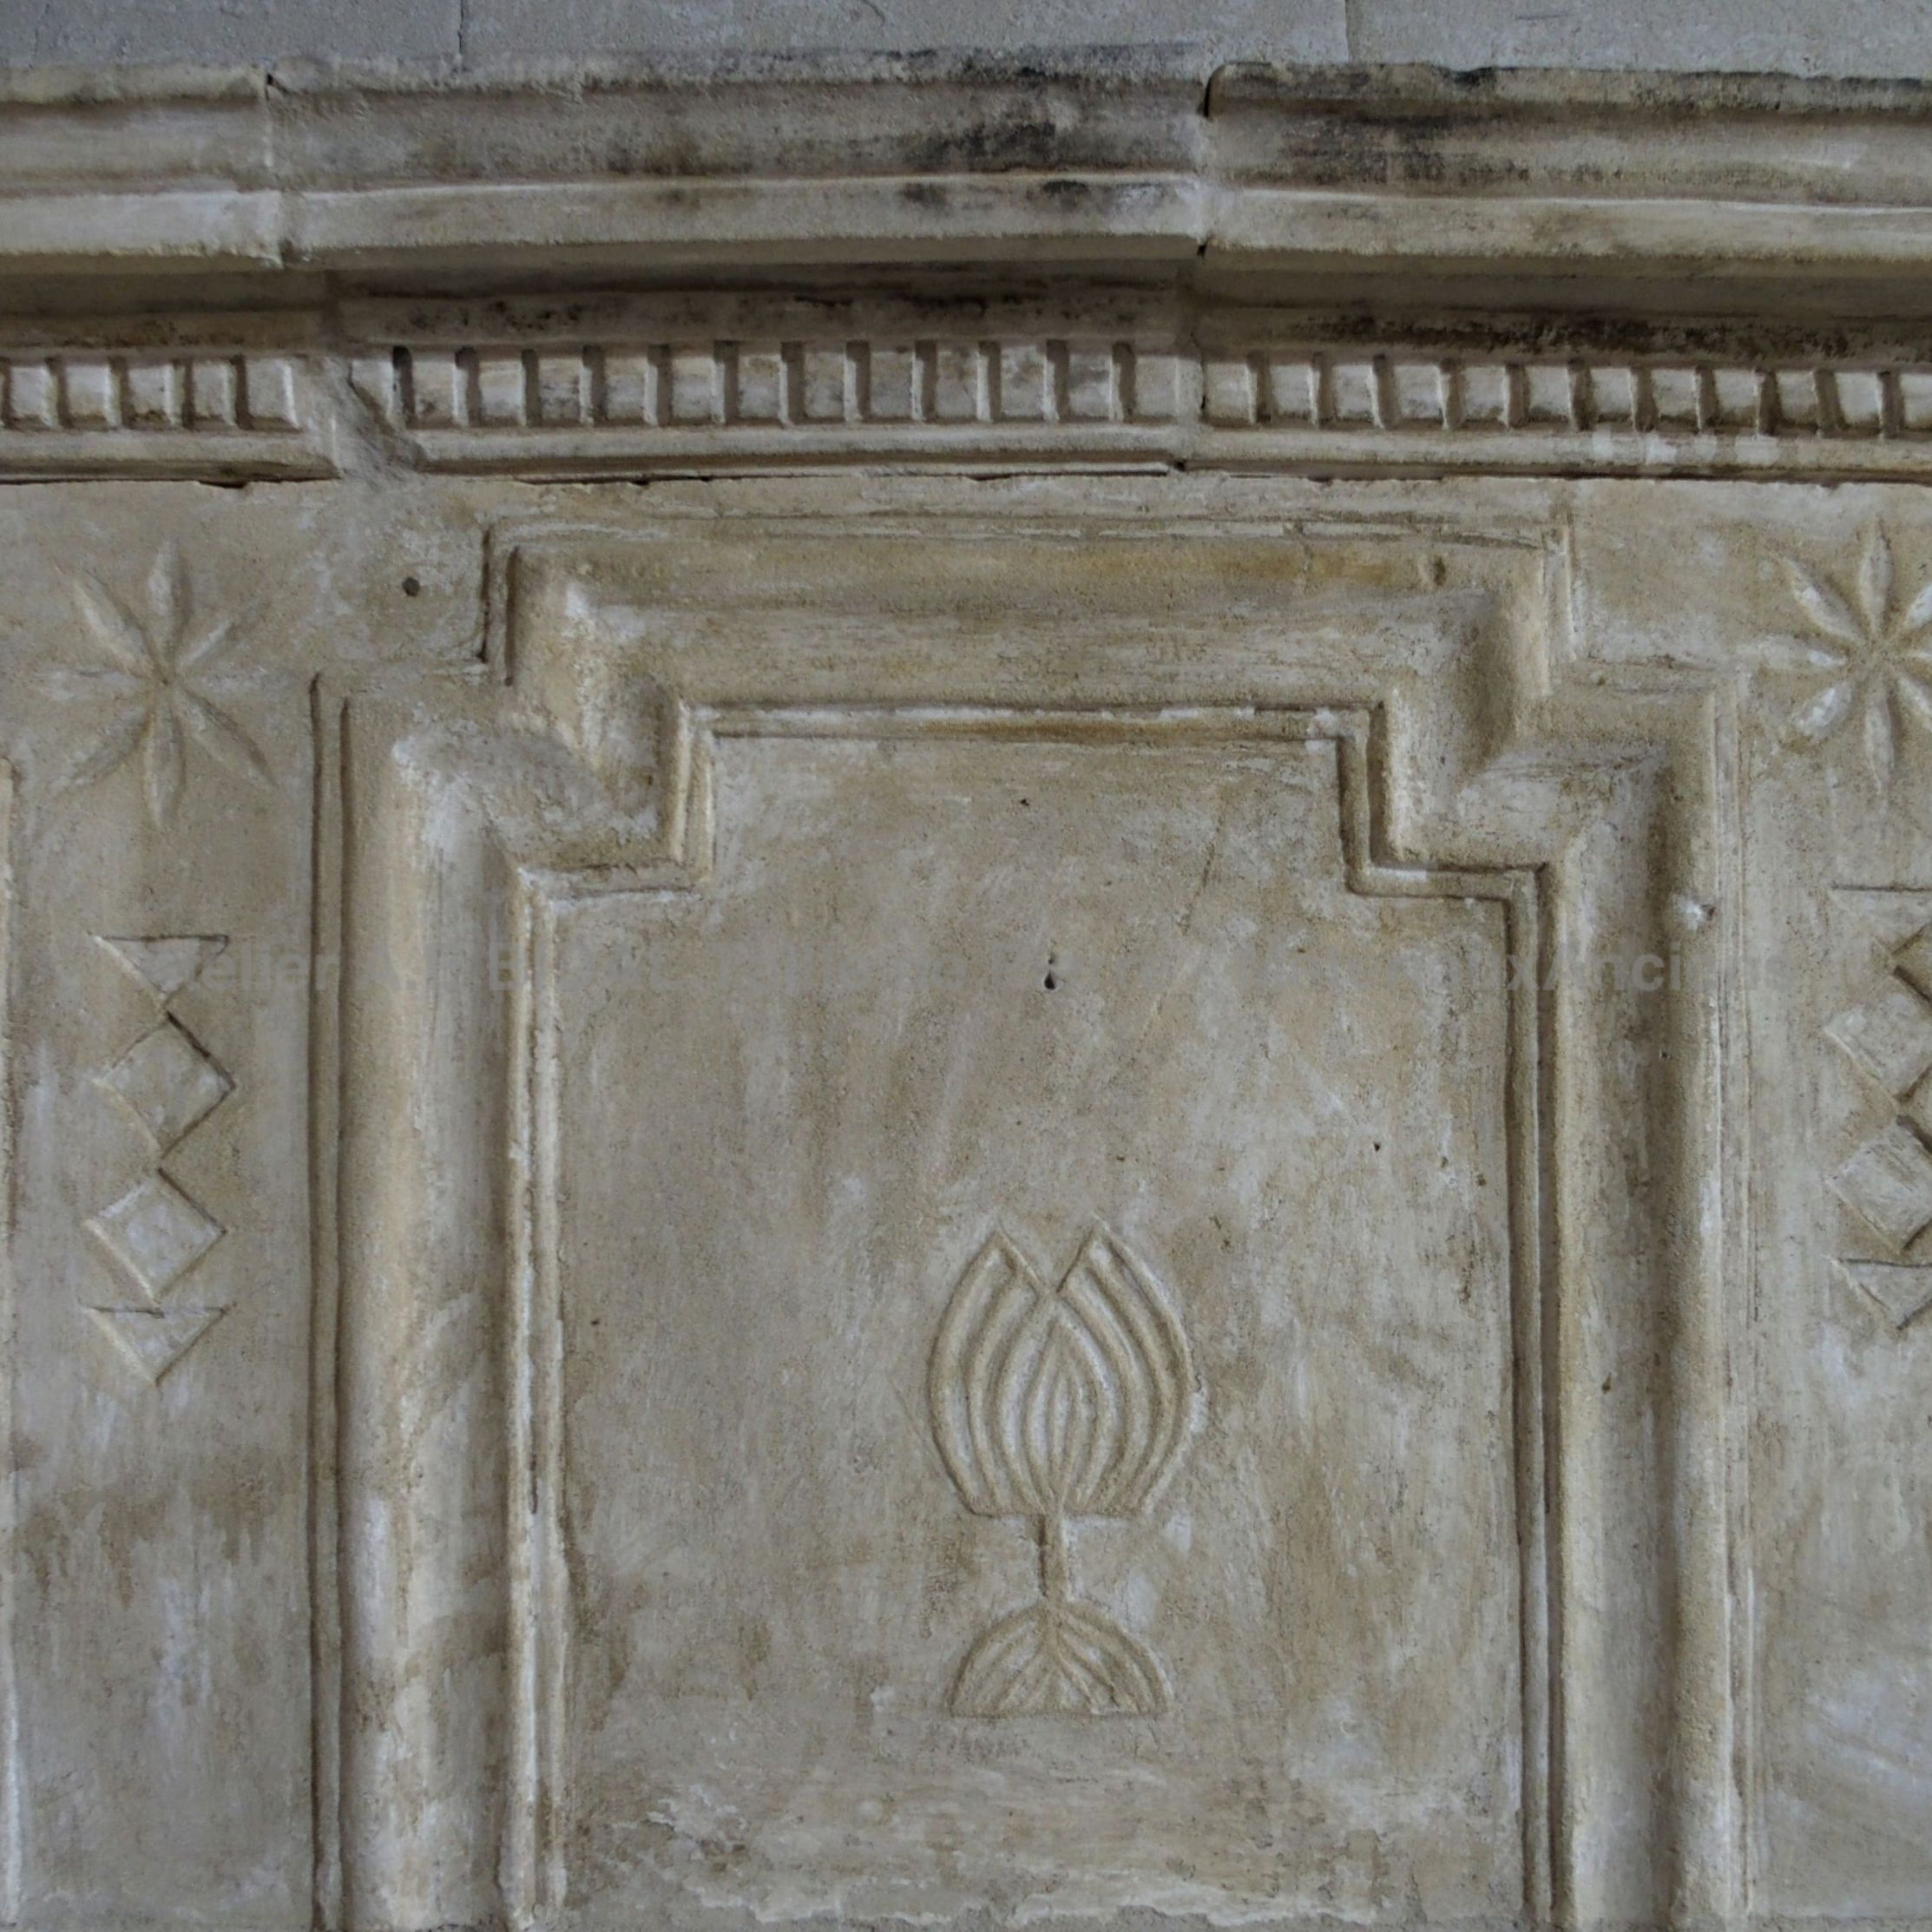 Louis xvi fireplace - an old fireplace with pretty varied patterns.